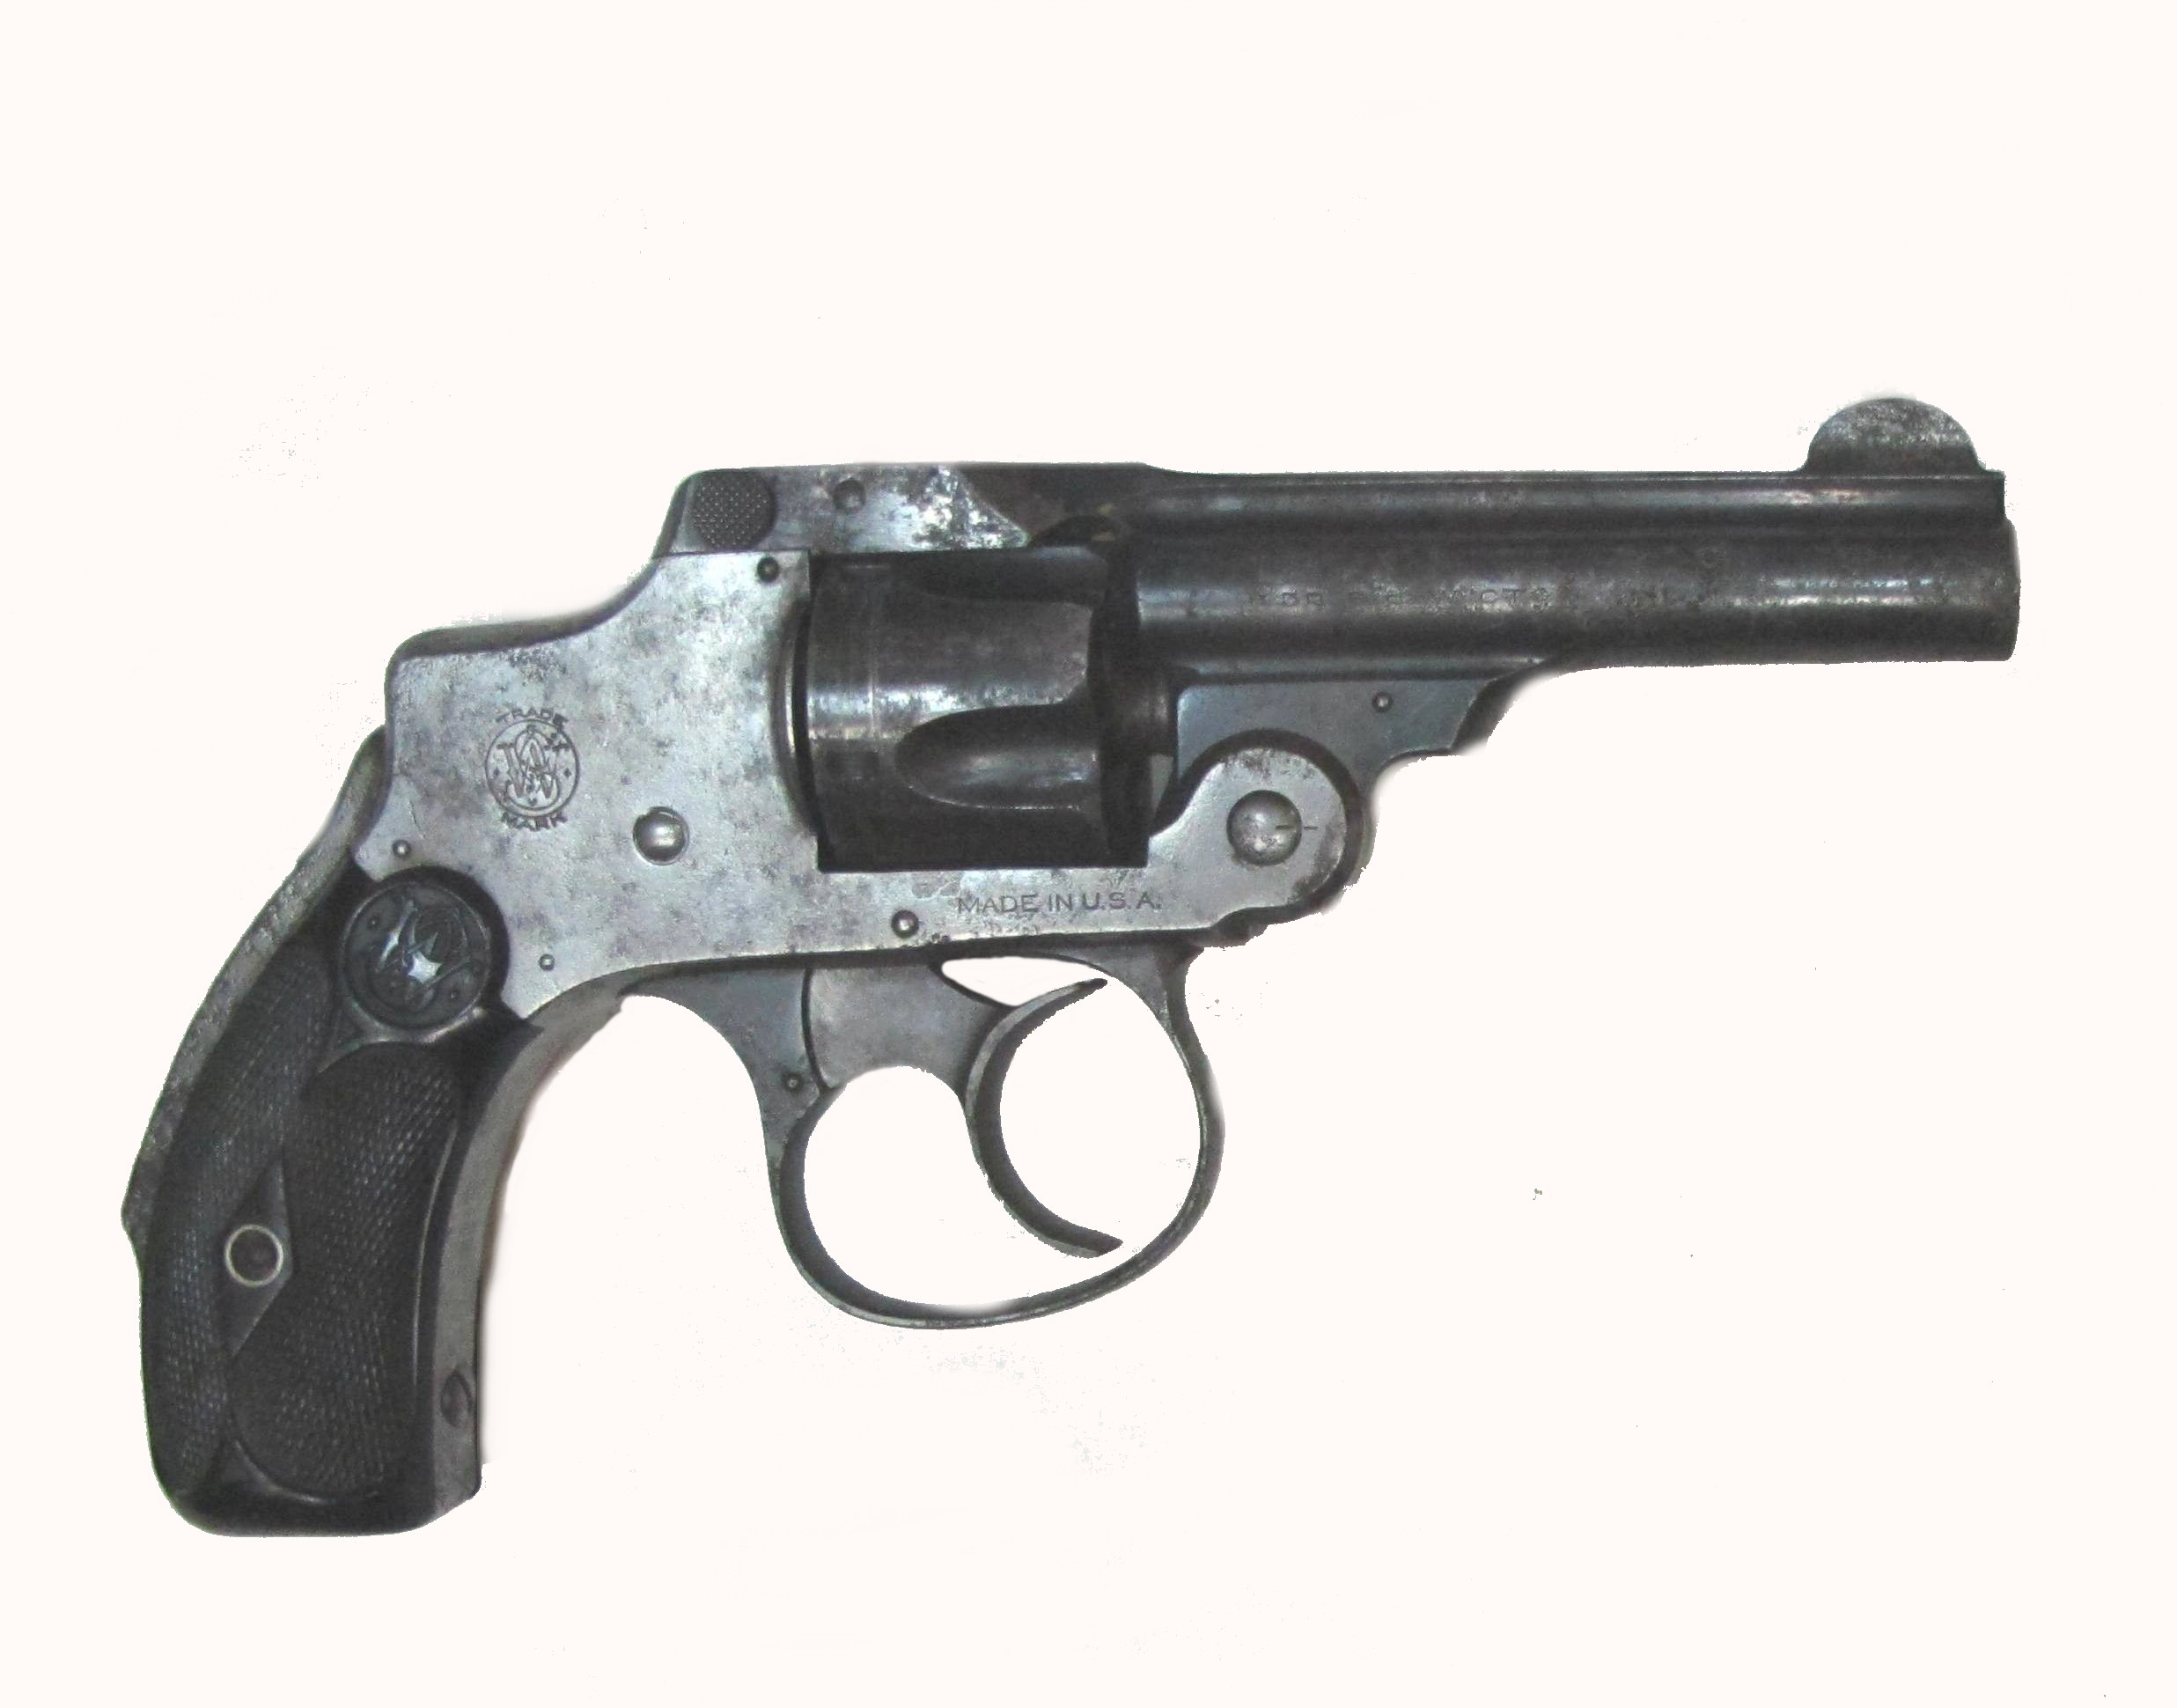 Rewolwer Smith & Wesson Hammerless Safety kal. 0,32 cala